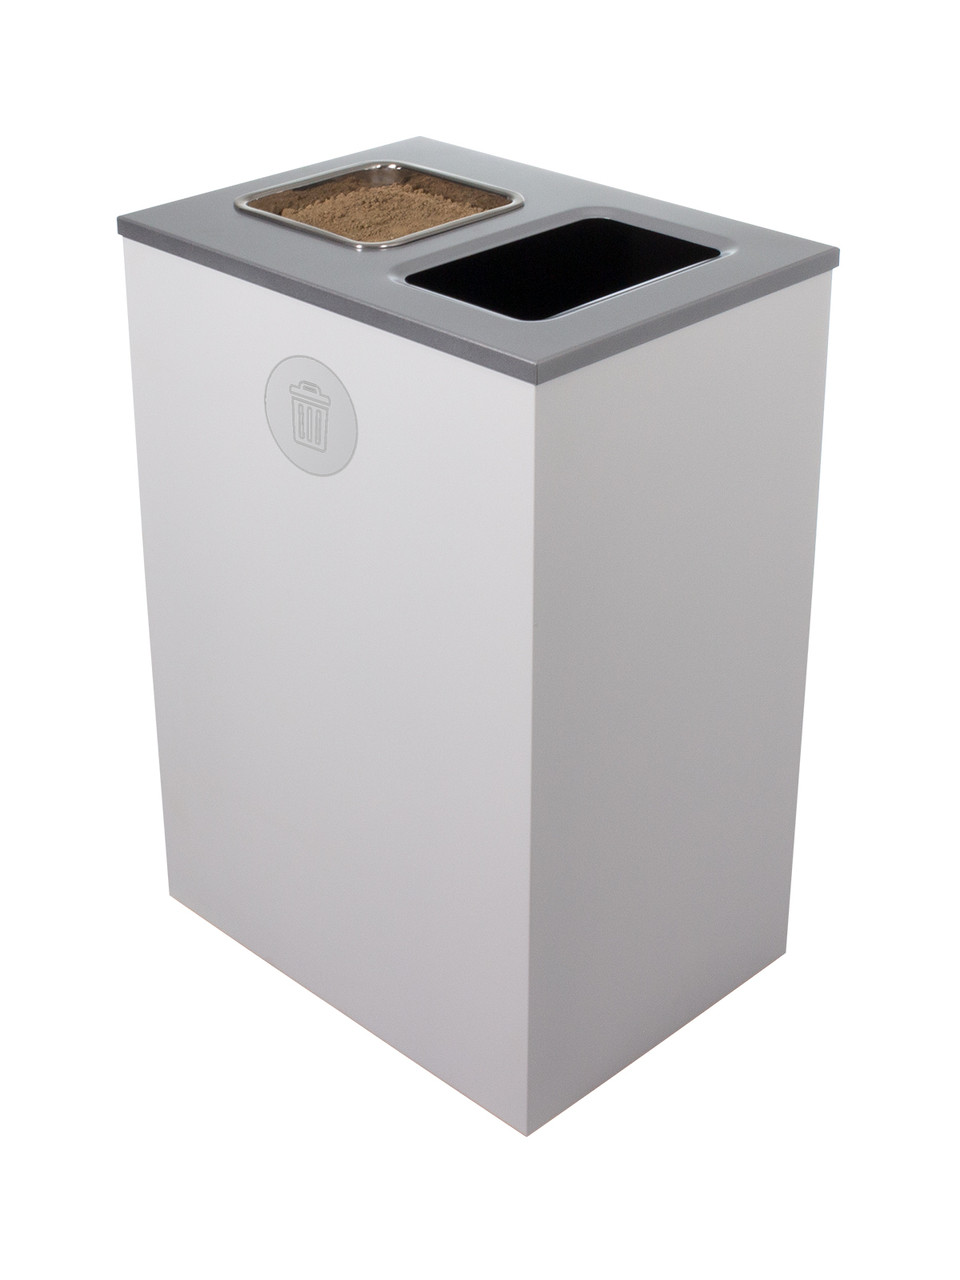 32 Gallon Steel Spectrum Cube XL Ash and Trash Can White 8107137-4